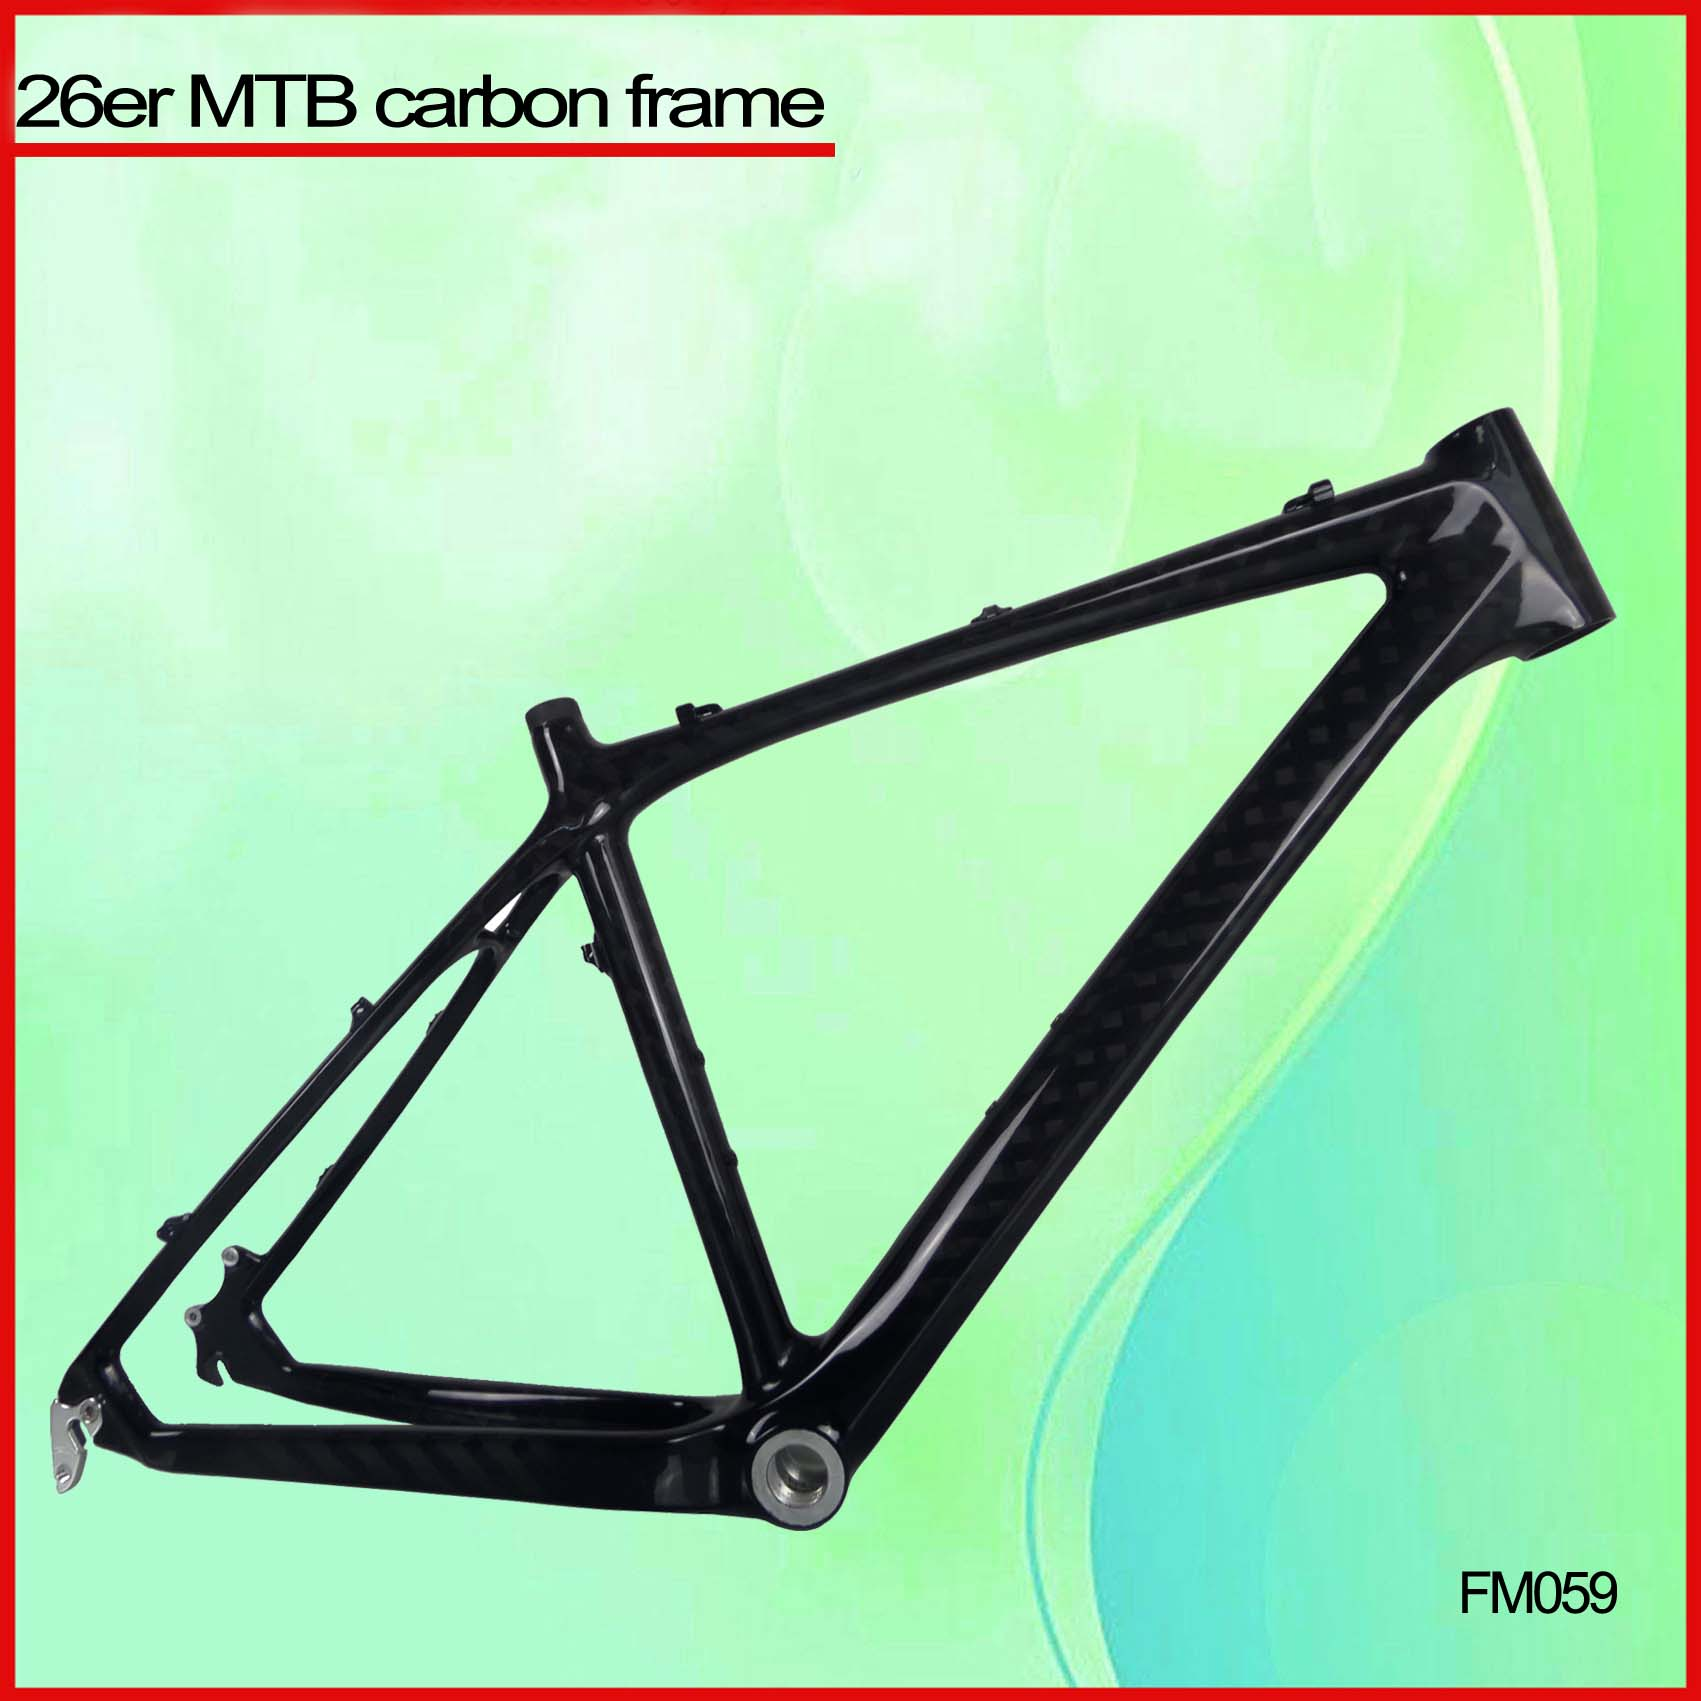 26er Tory full carbon Mountain carbon bike frame Falcon FM059